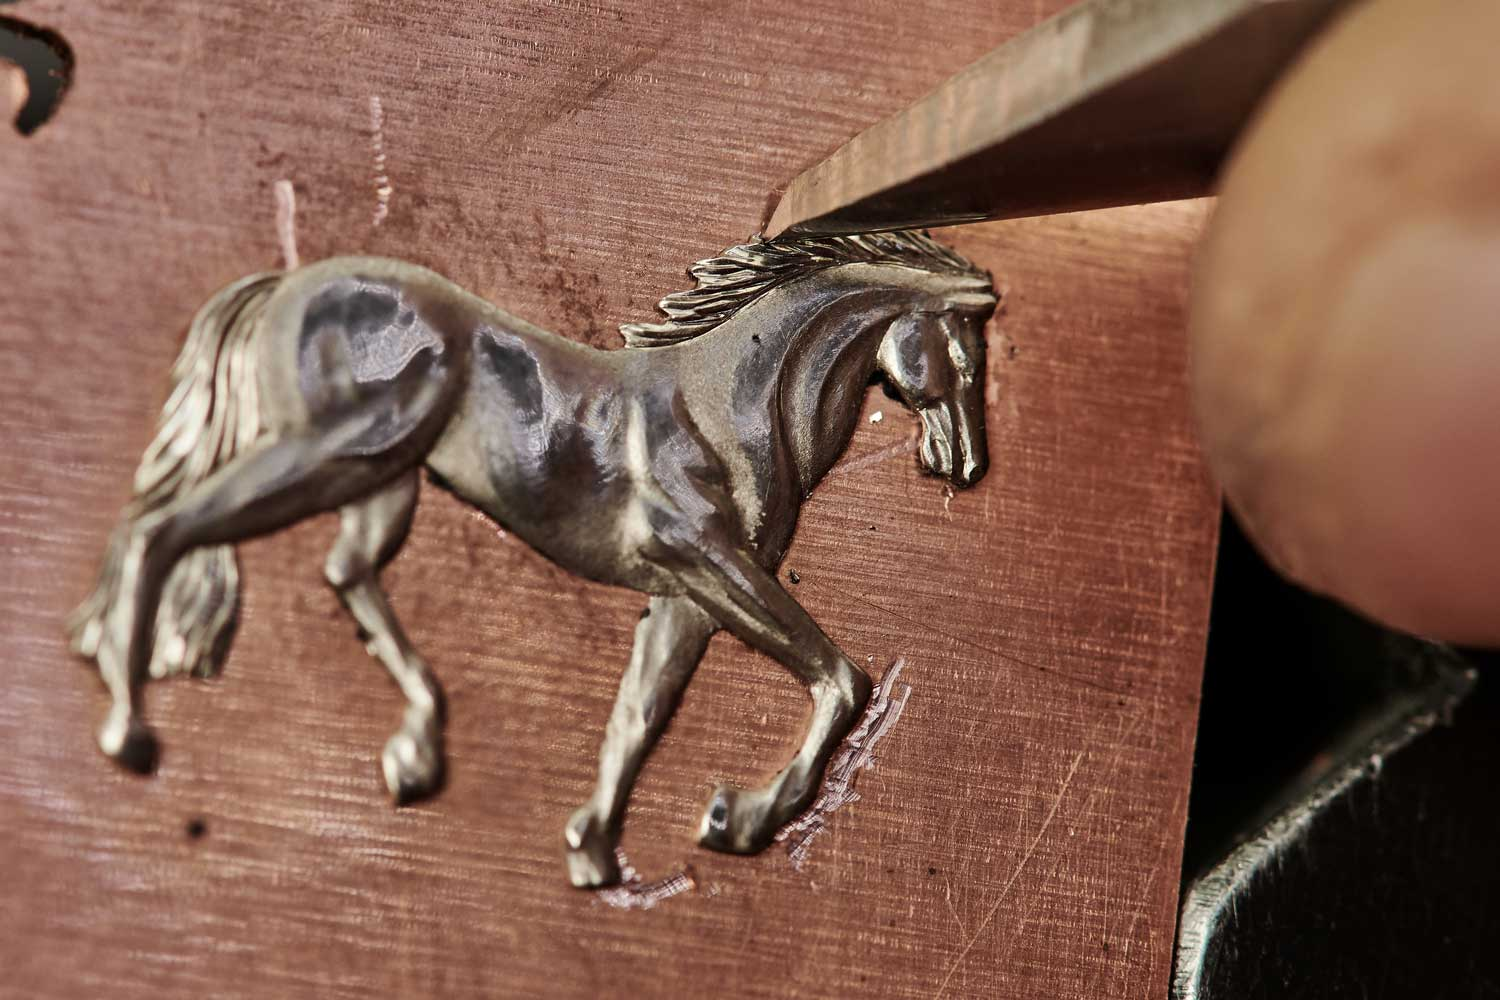 The engraver carves each relief detail by hand, taking nearly a week for each dial.